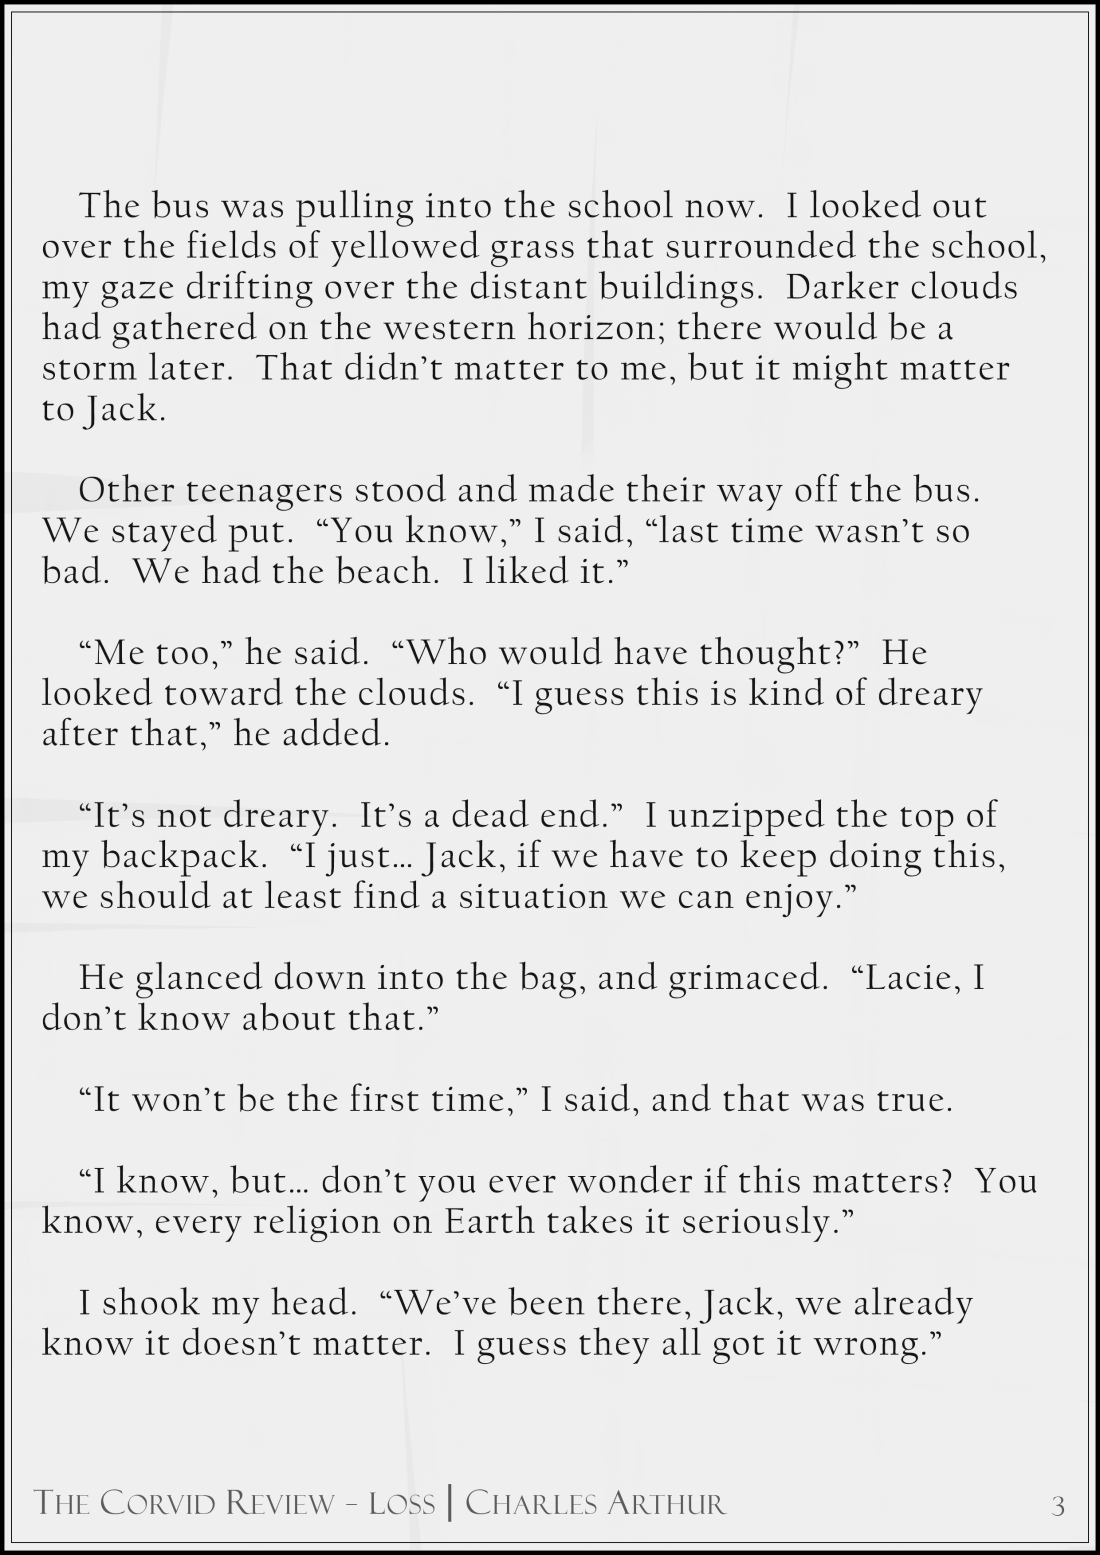 The Corvid Review - The Third Time Around - Short Story by Charles Arthur page3